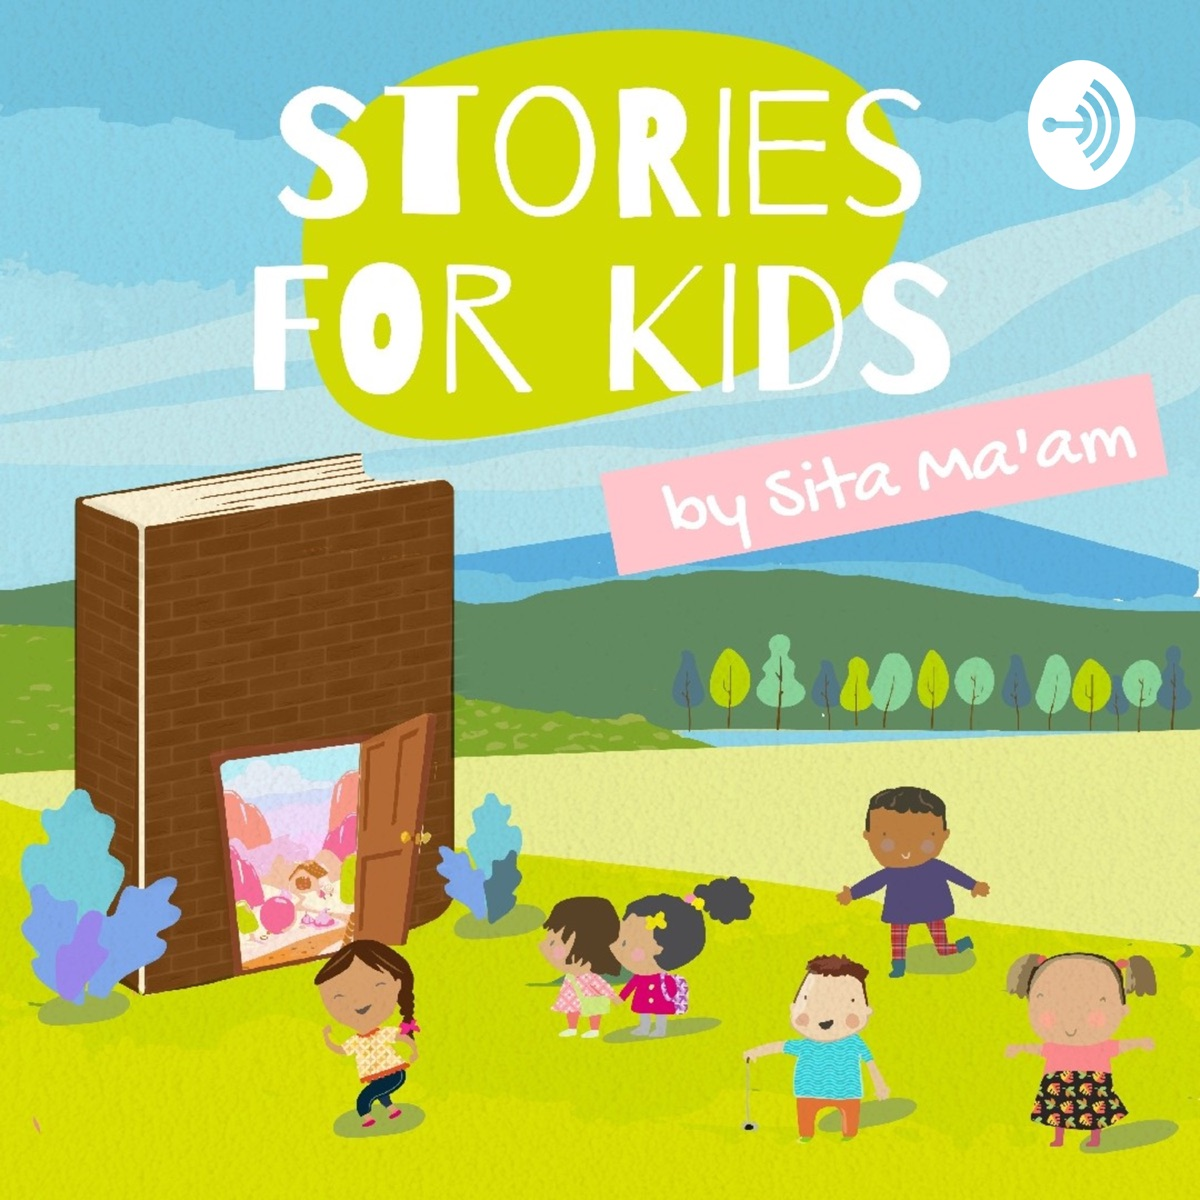 Stories for kids by Sita Ma'am